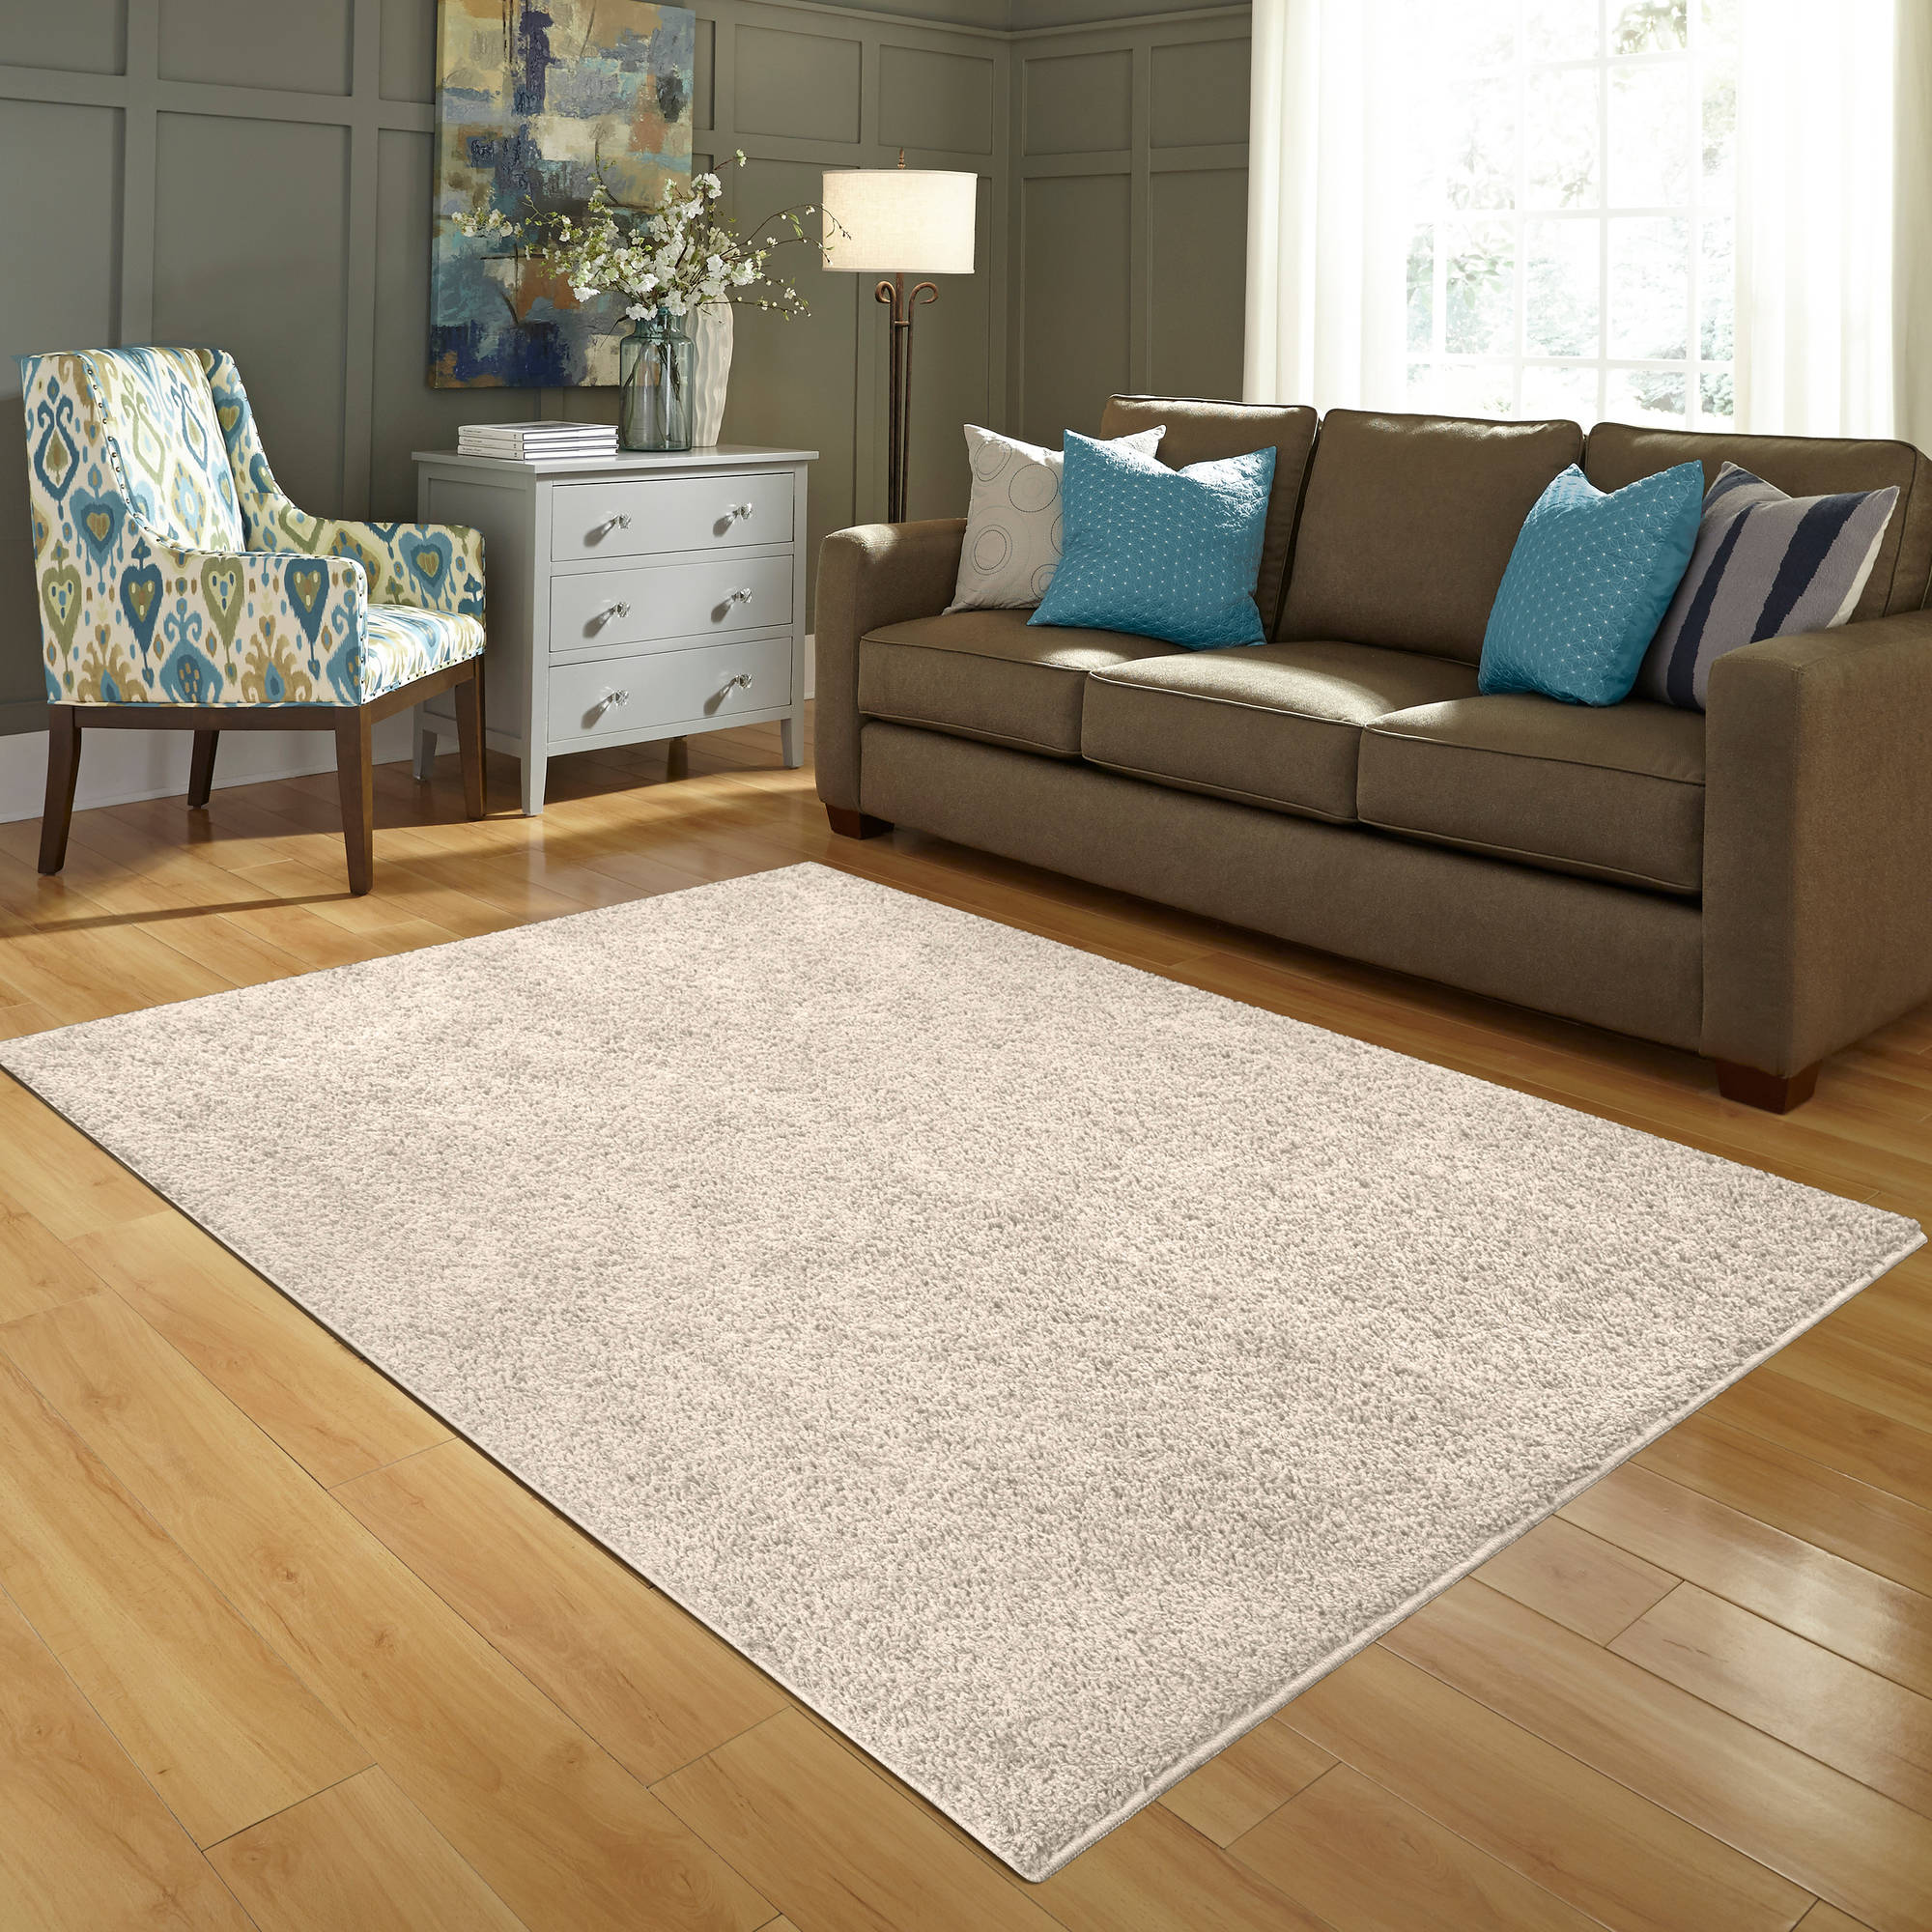 Mainstays Olefin Shag Area Rug Collection